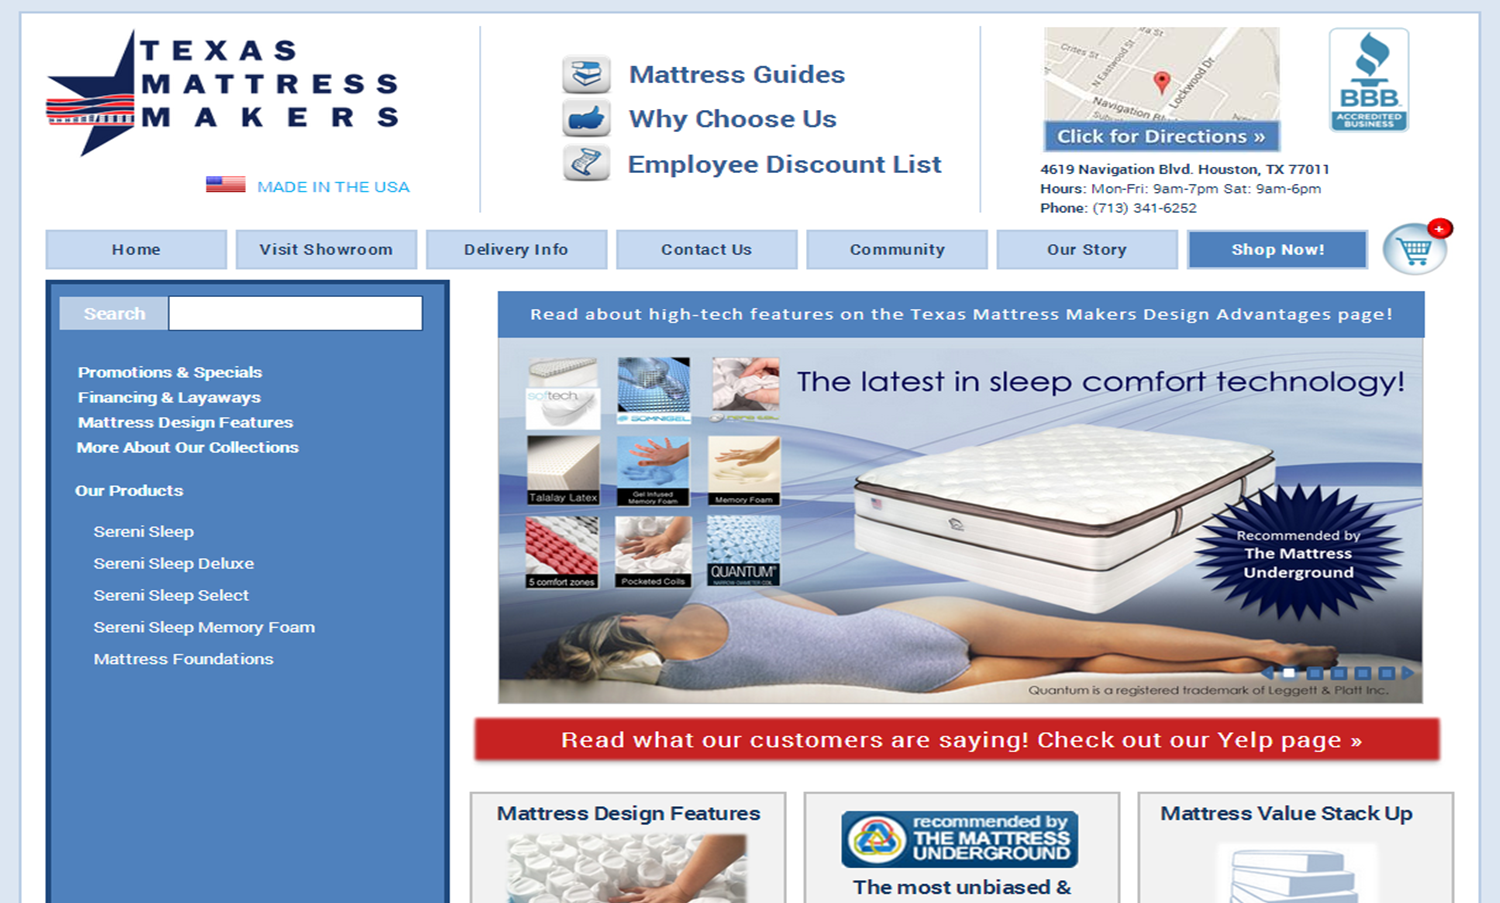 texas mattress makers is recommended by the mattress underground